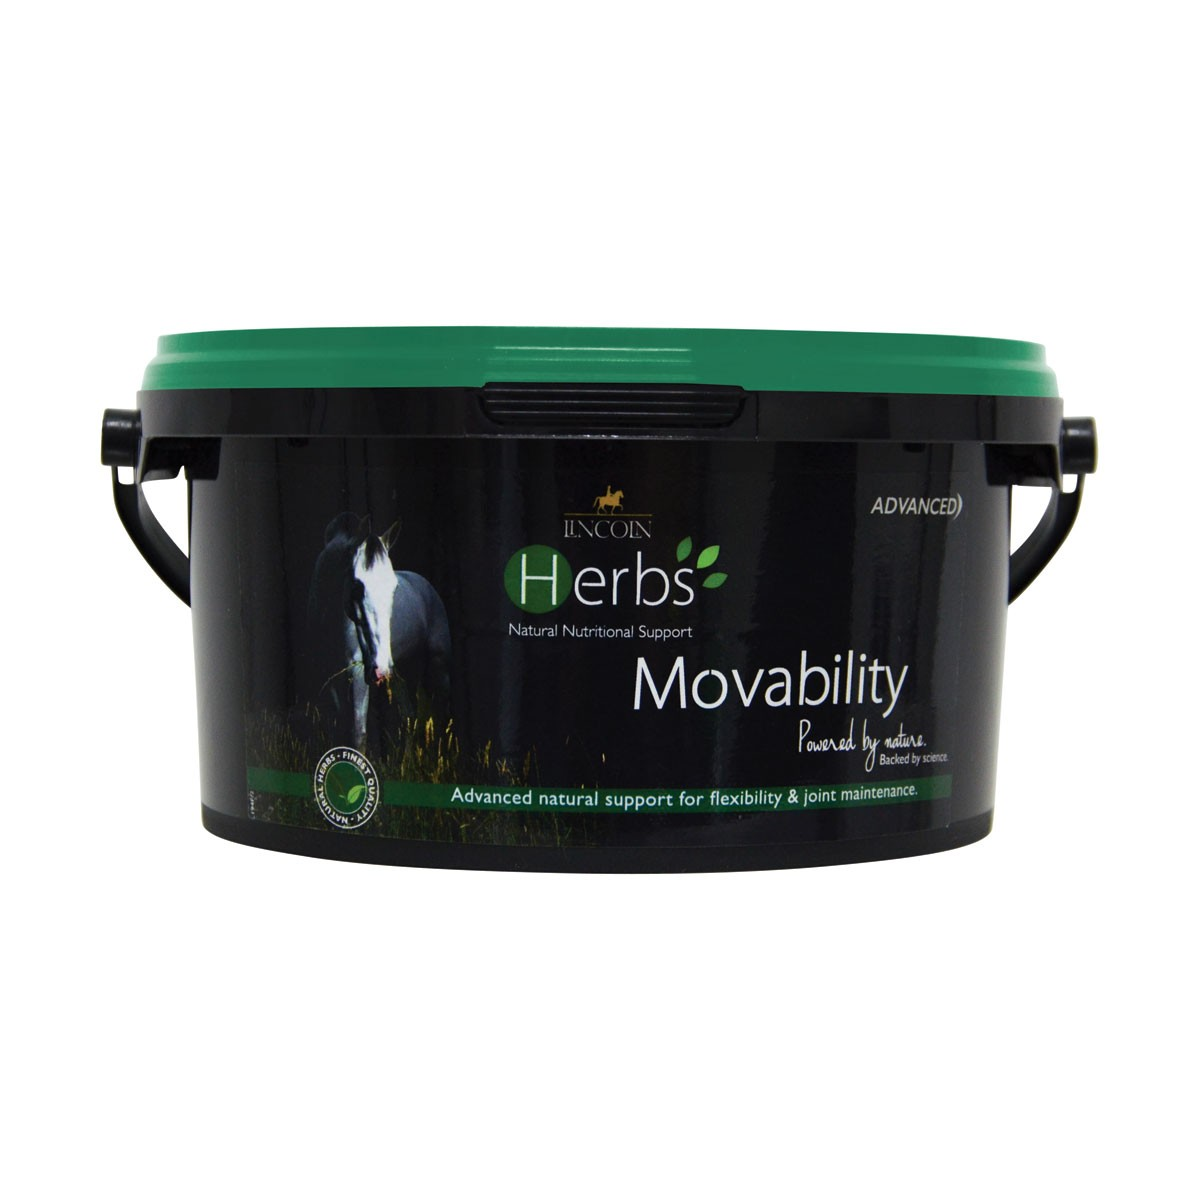 Lincoln Herbs Movability